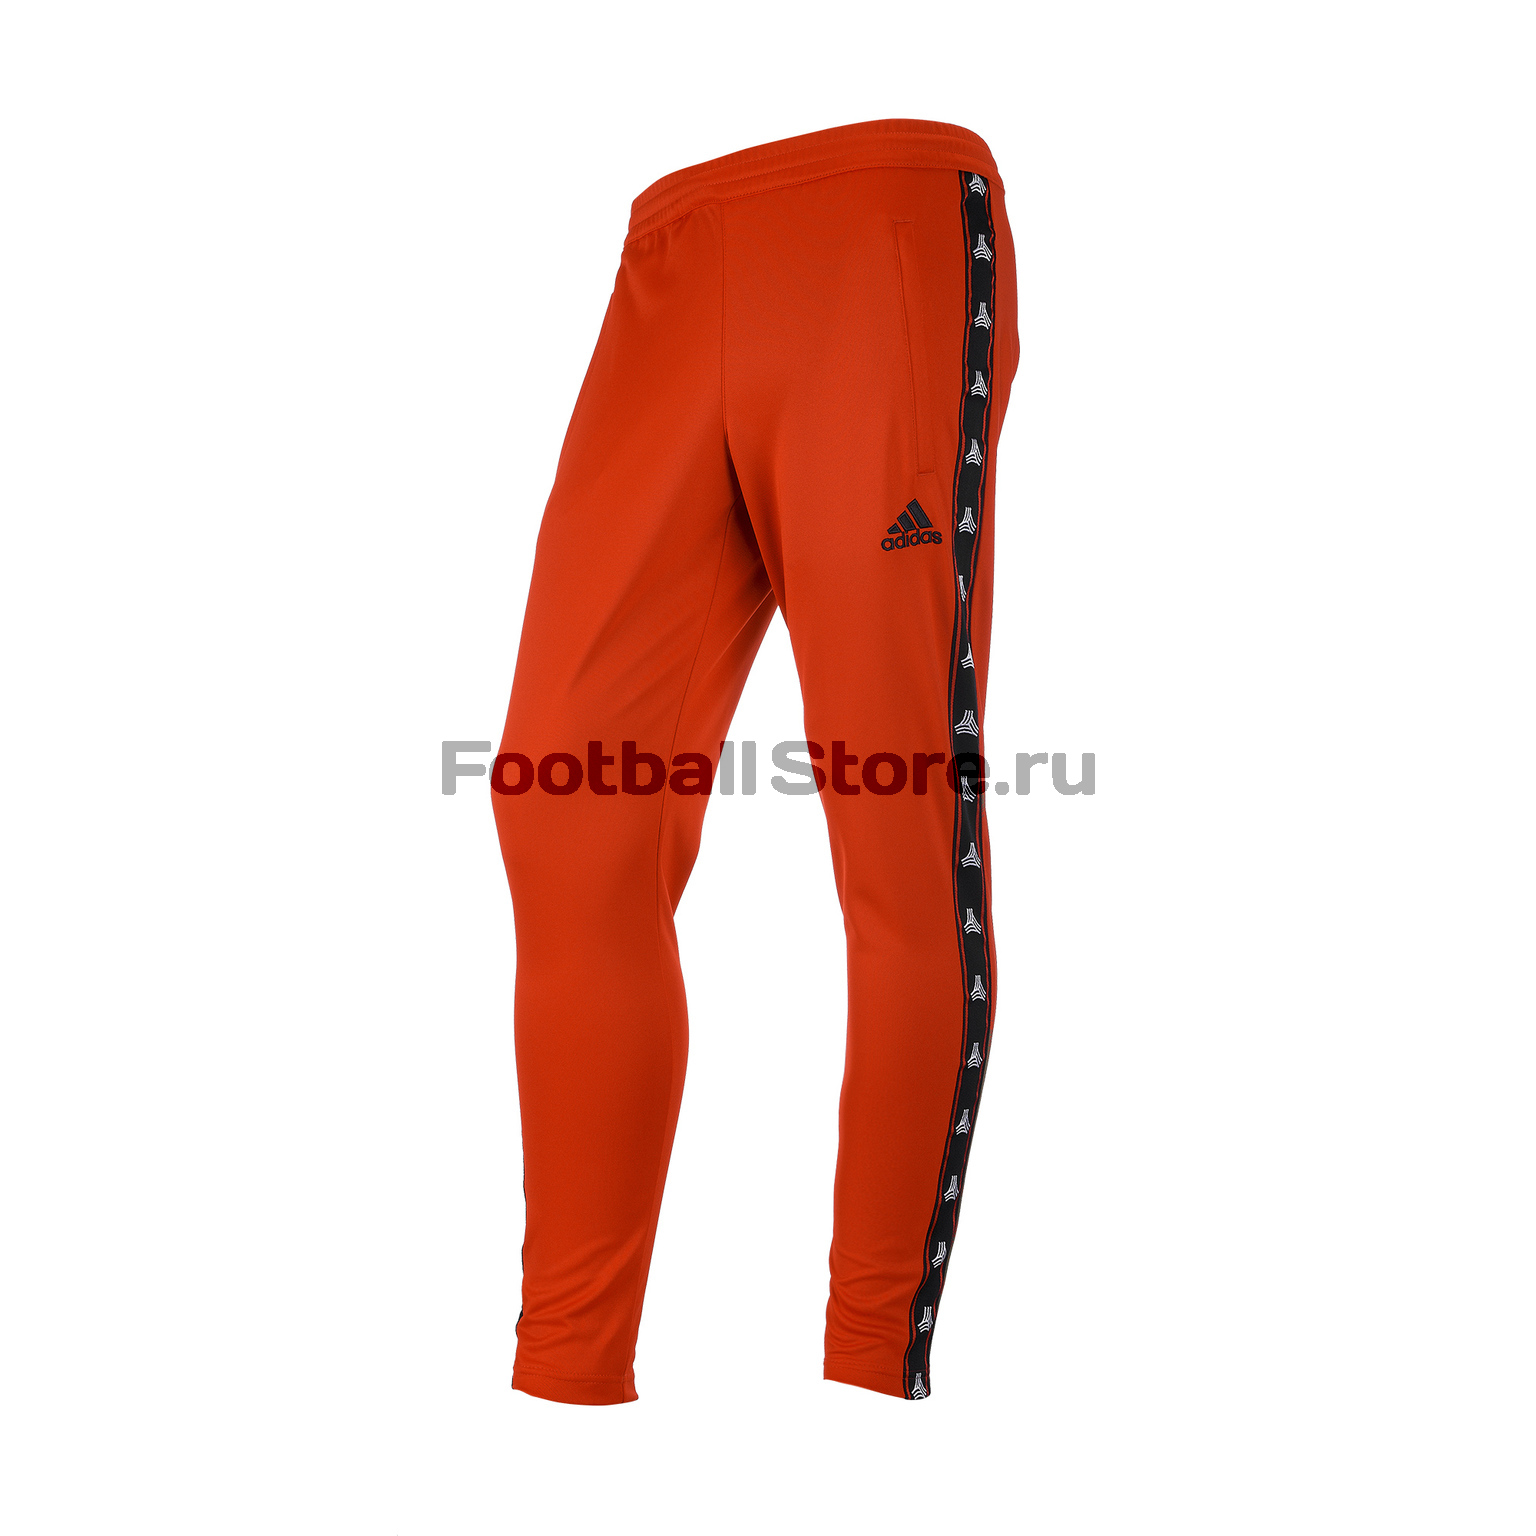 Брюки тренировочные Adidas Tan Club Pant DW9363 adidas little boys core tricot pant